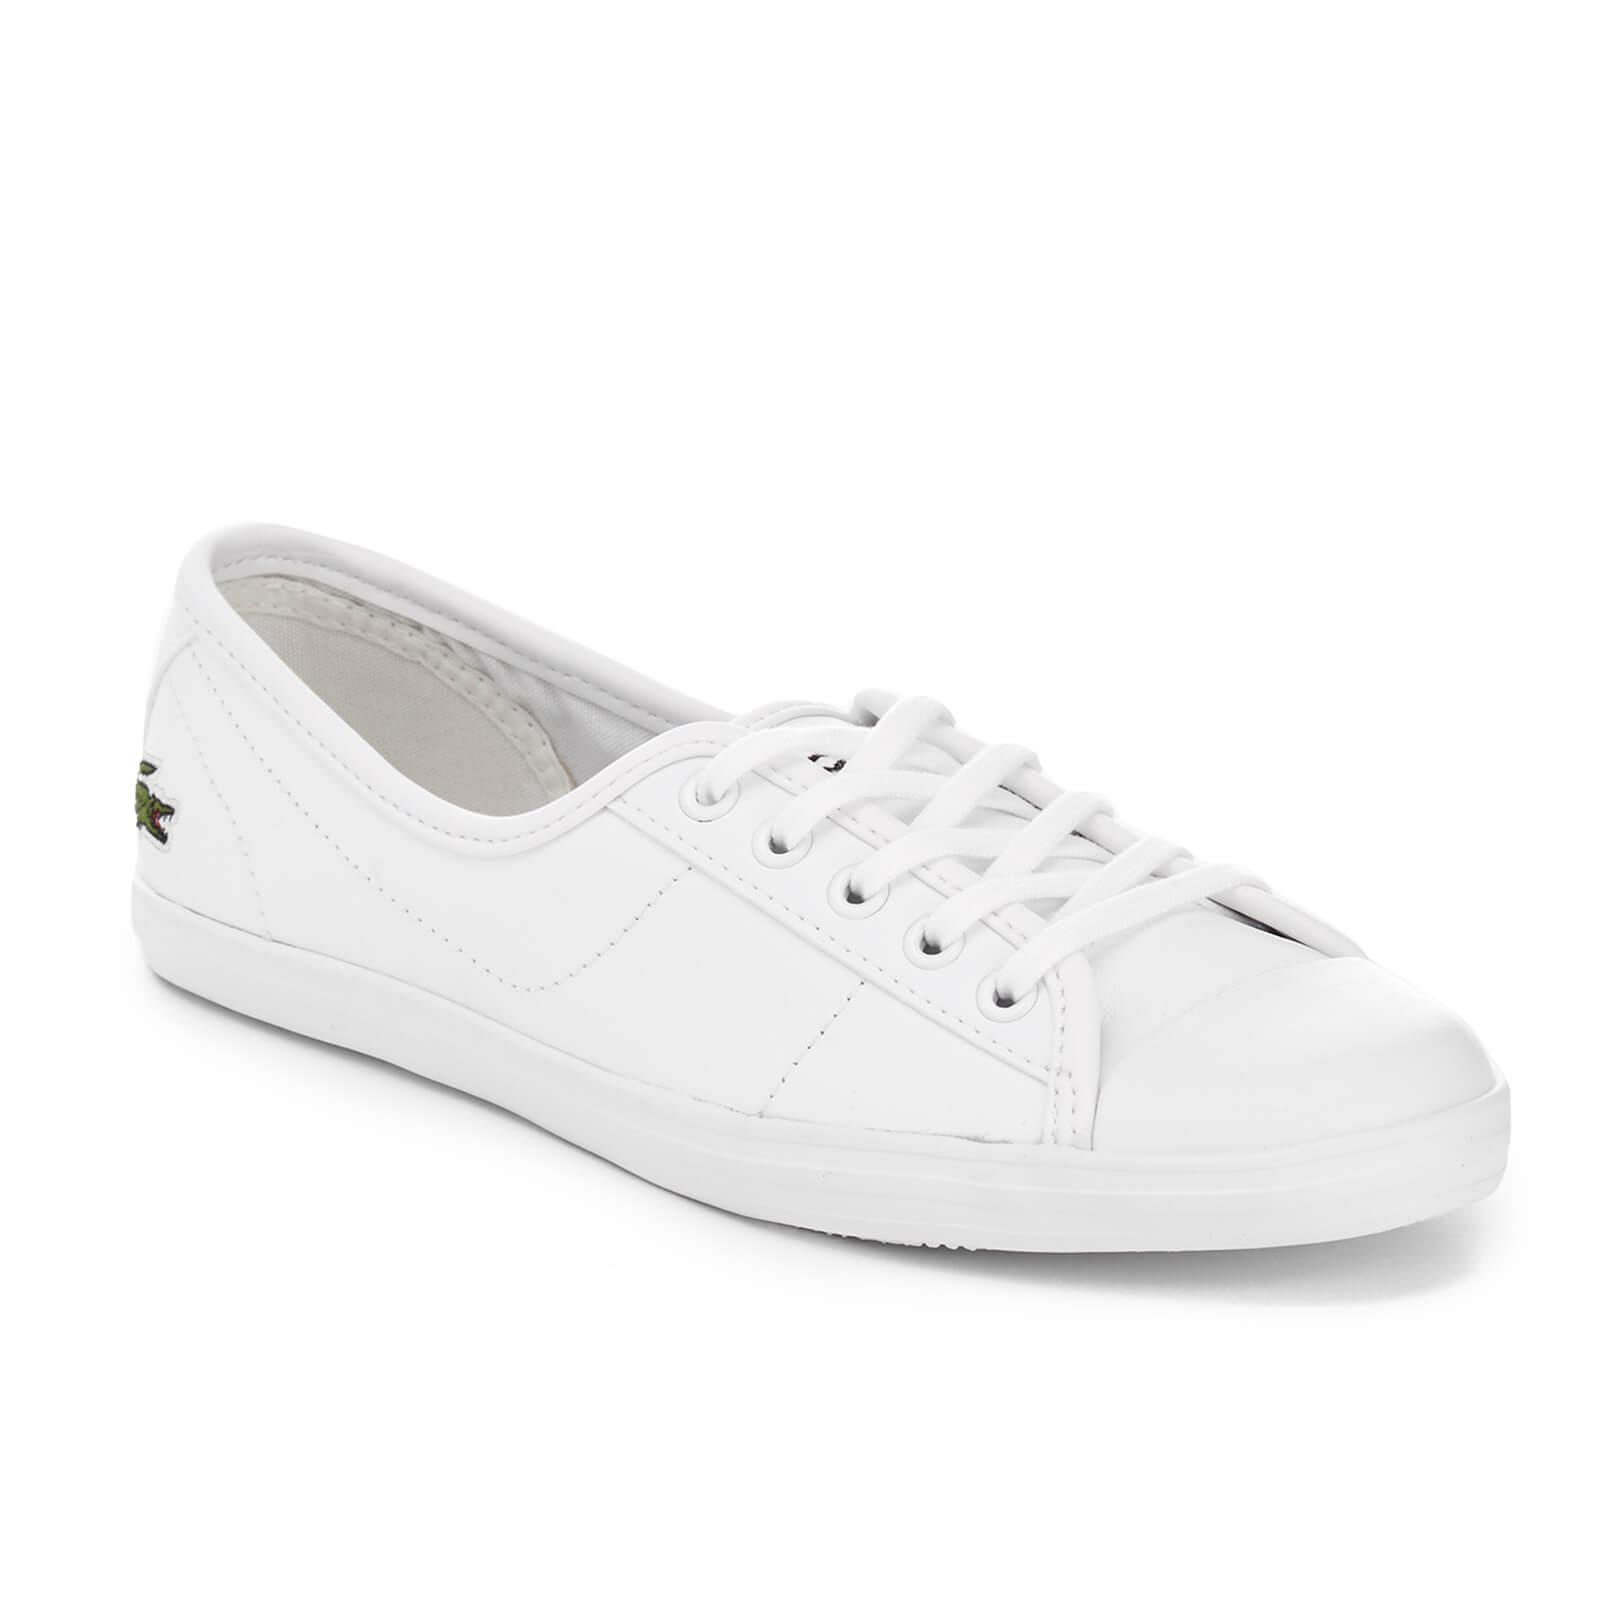 b6055be93 Lacoste Women s Ziane Leather Chunky Pumps in White - Lyst